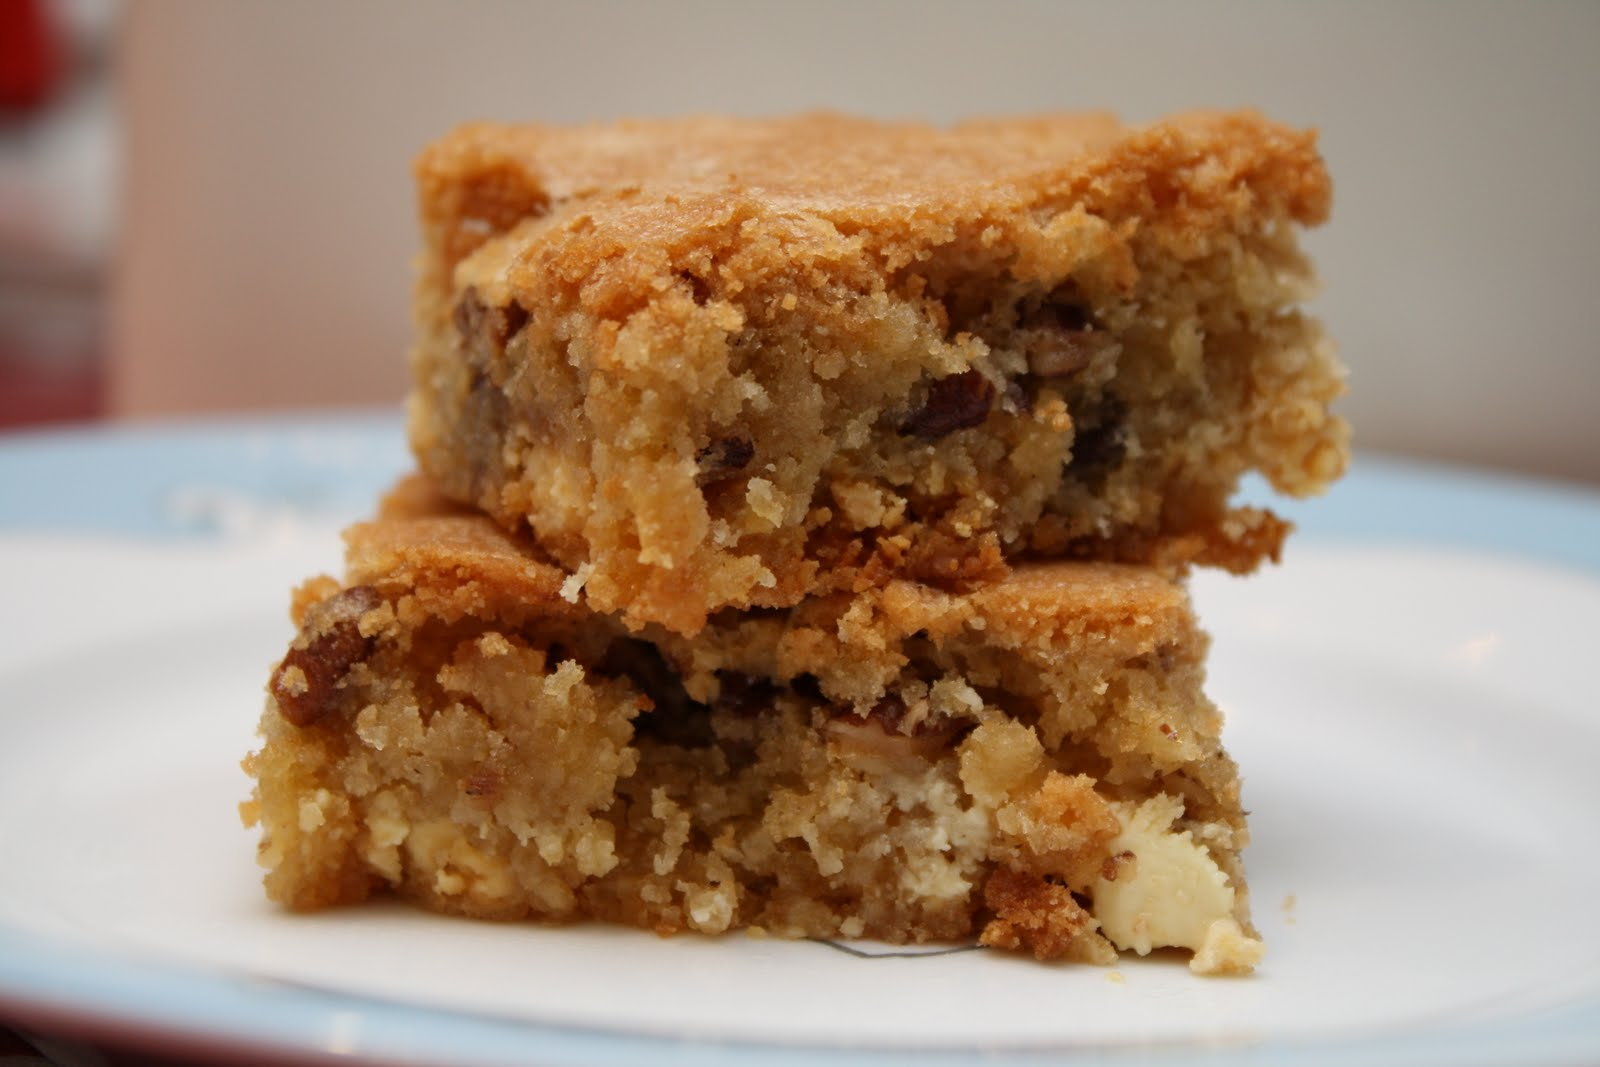 ... Made from Scratch: White Chocolate and Toasted Pecan Blondies